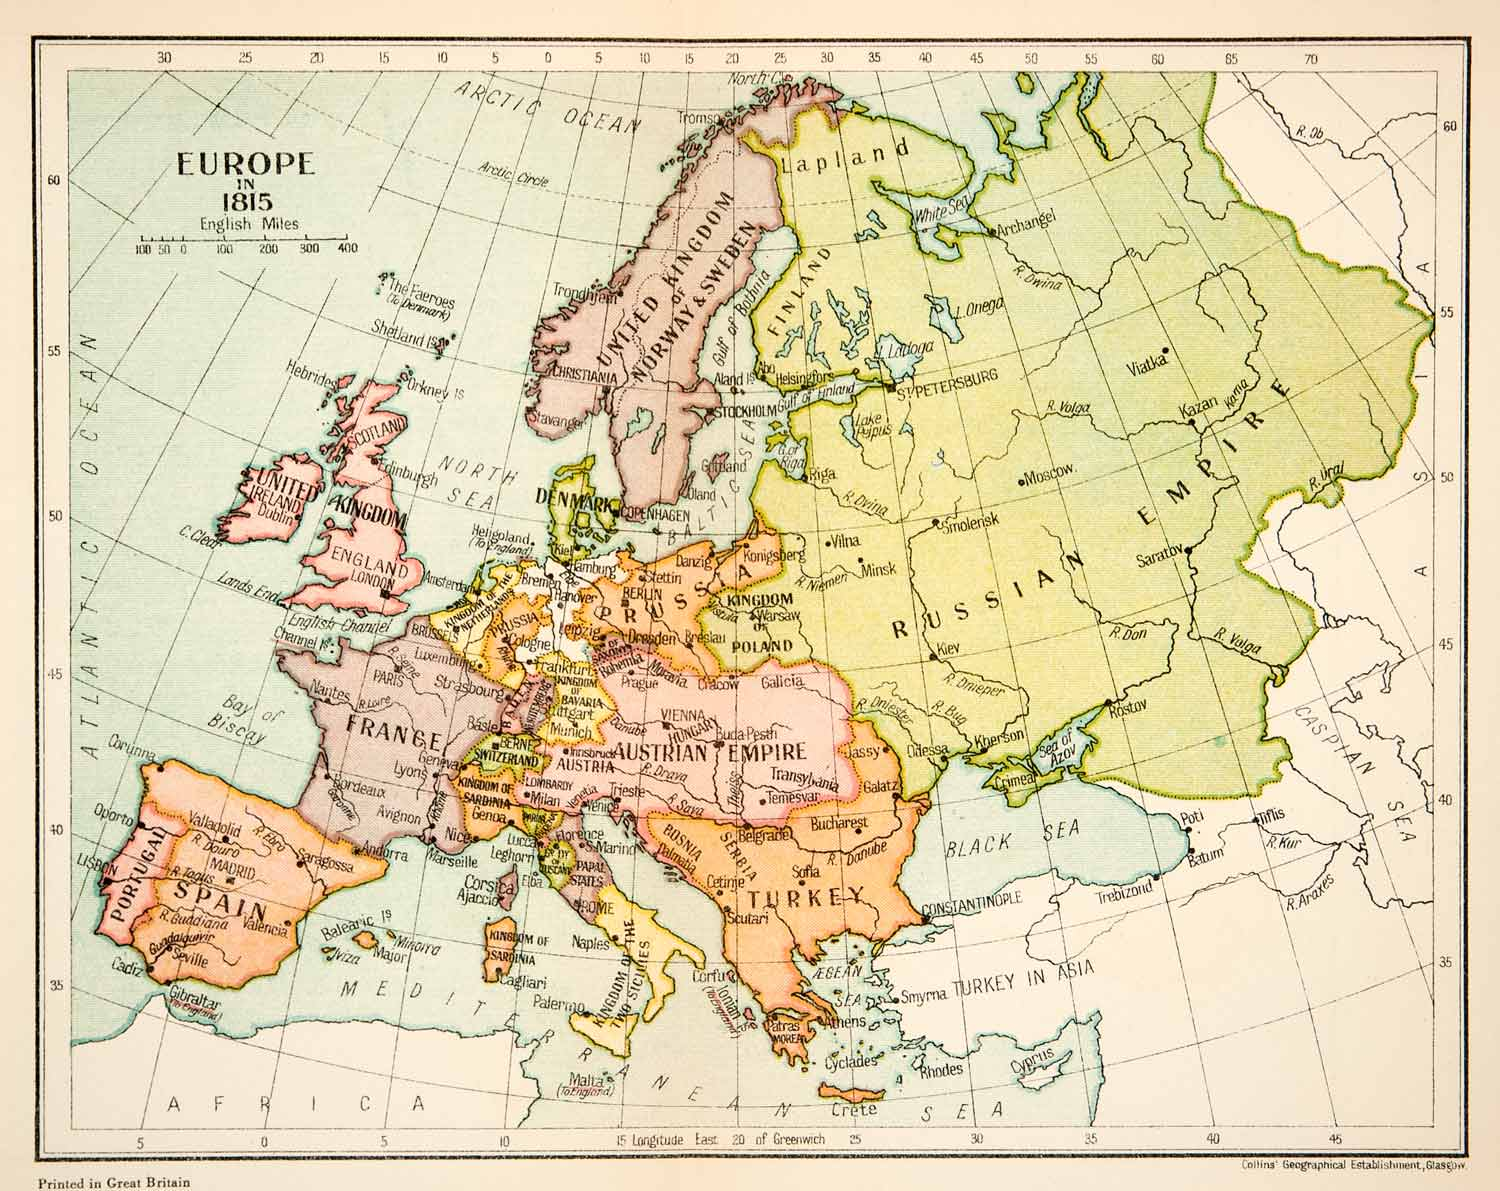 1926 Lithograph Map Europe 1815 Russian Empire France Turkey Spain